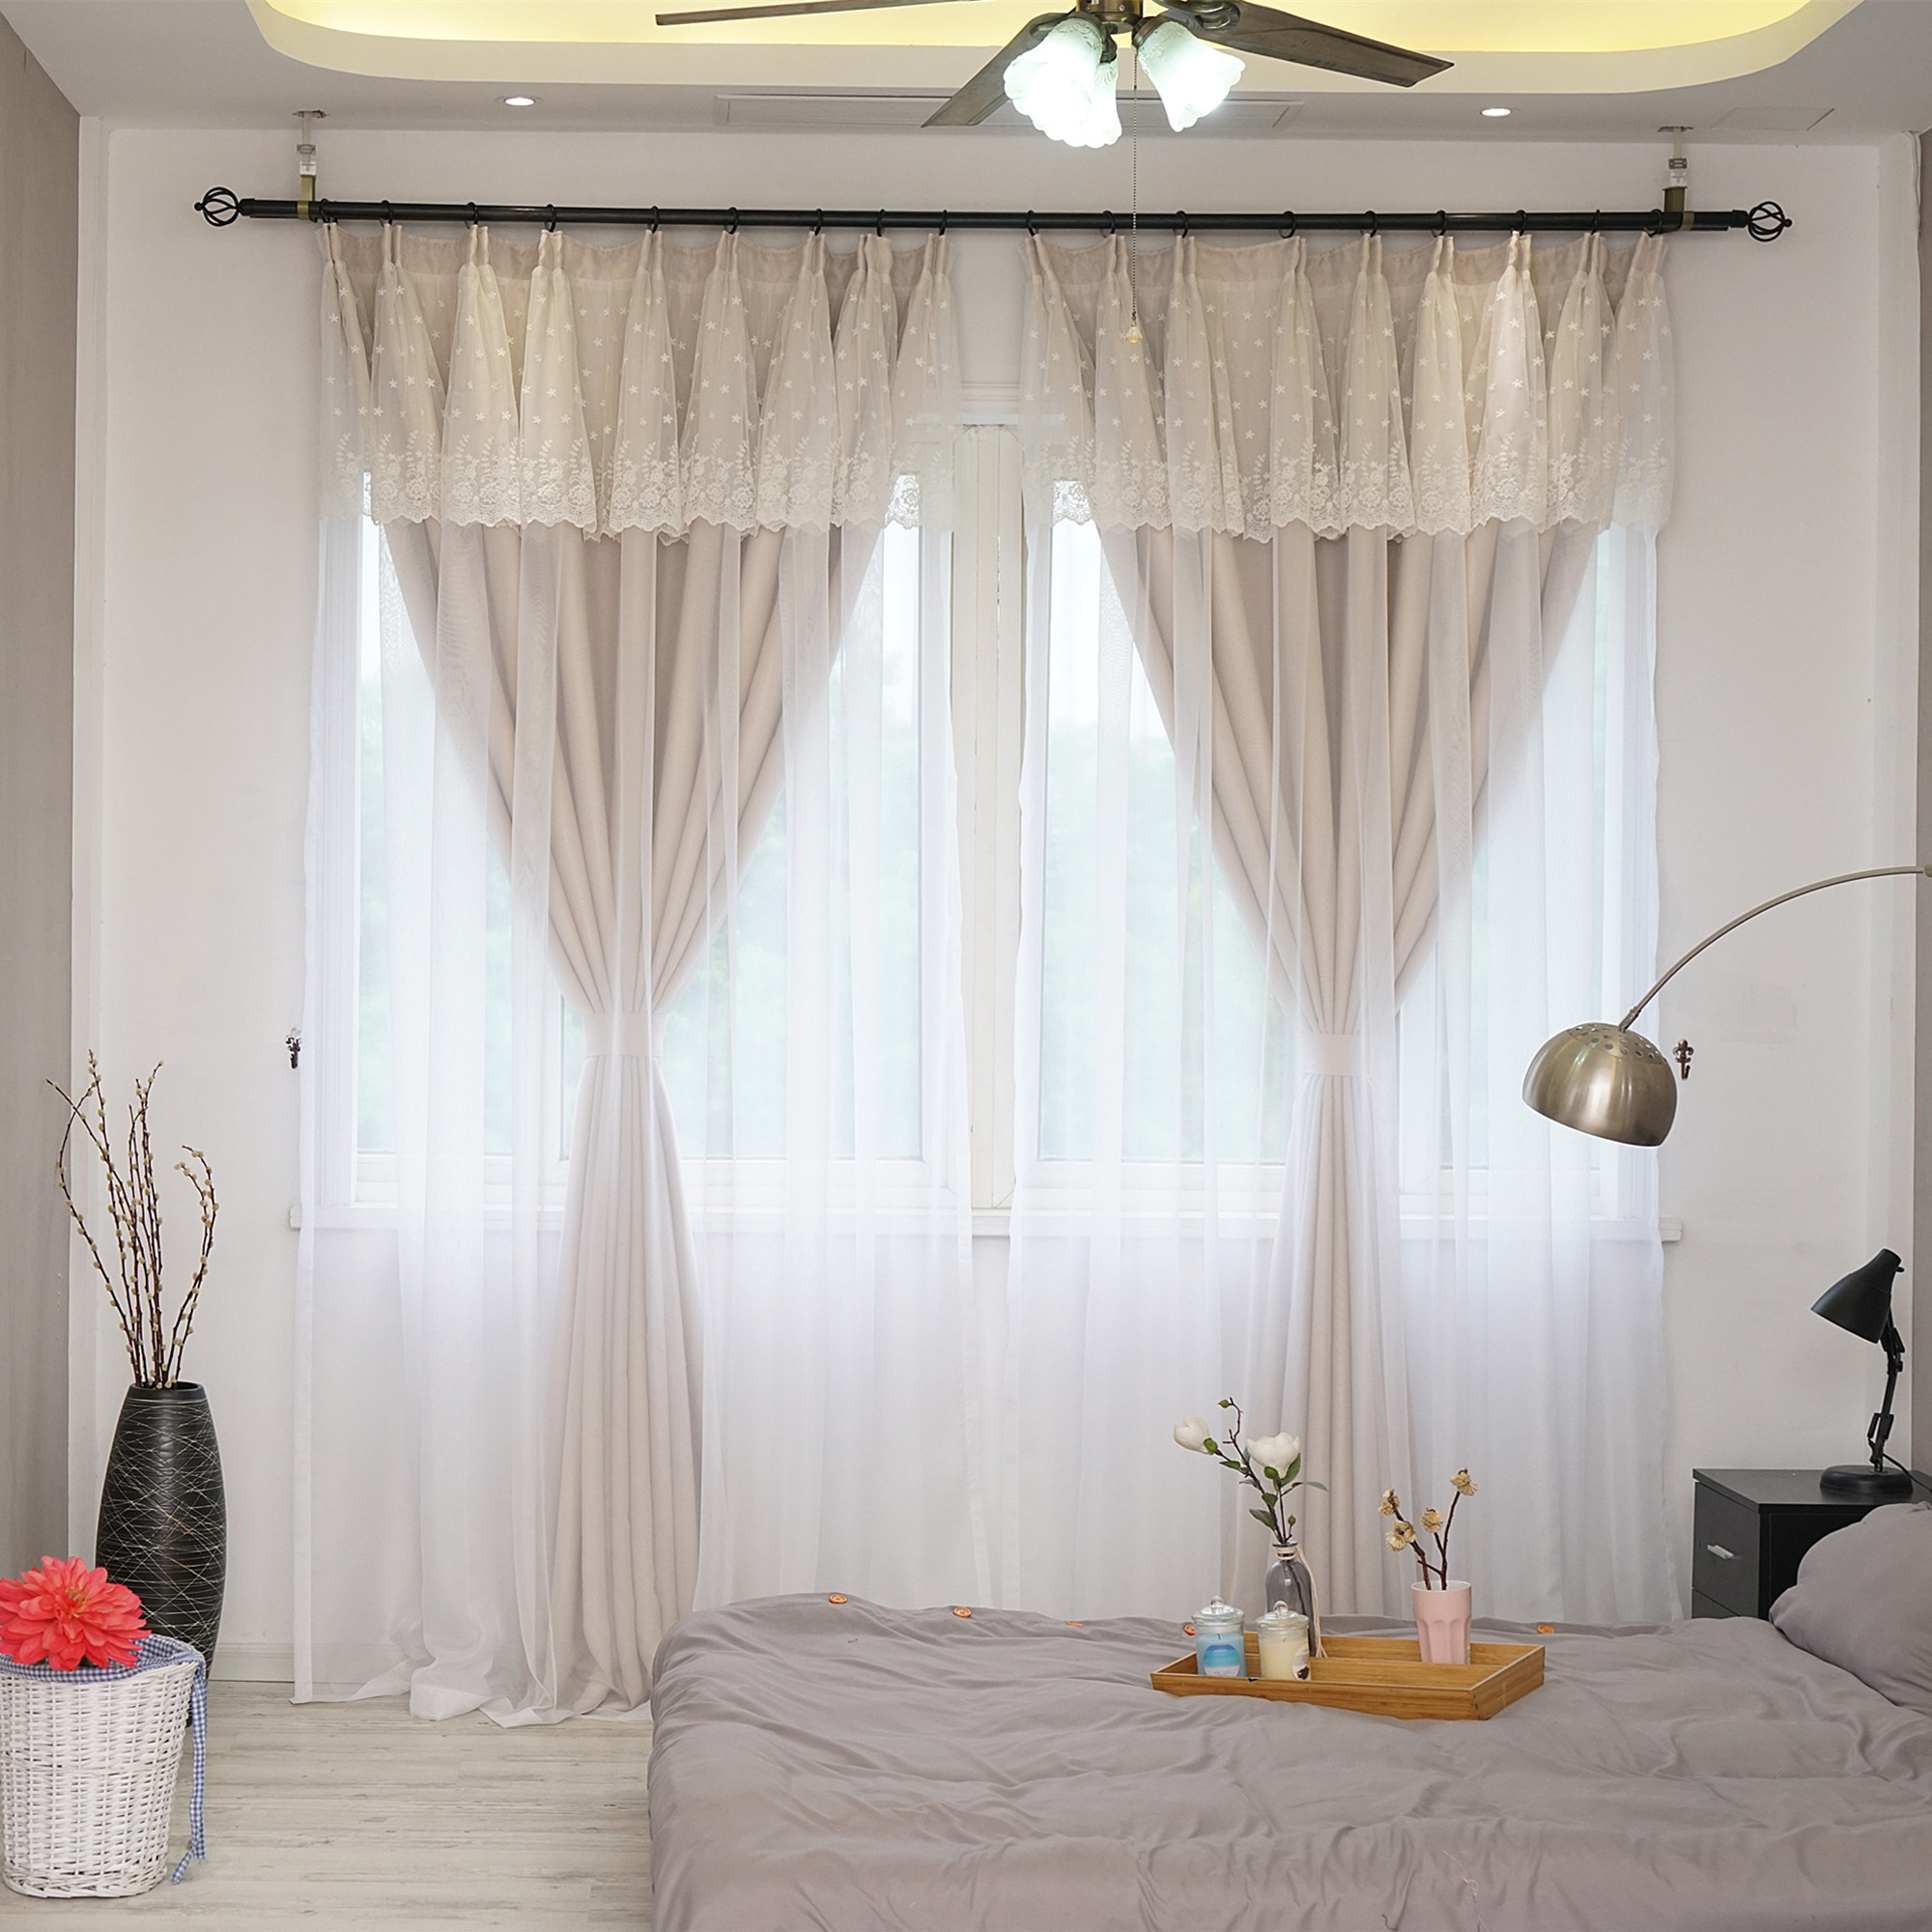 Us 46 68 22 Off Sunnyrain 1 Piece Double Layer Lace Curtain For Living Room Blackout Curtains For Bedroom Children Room Drapes Customizable In